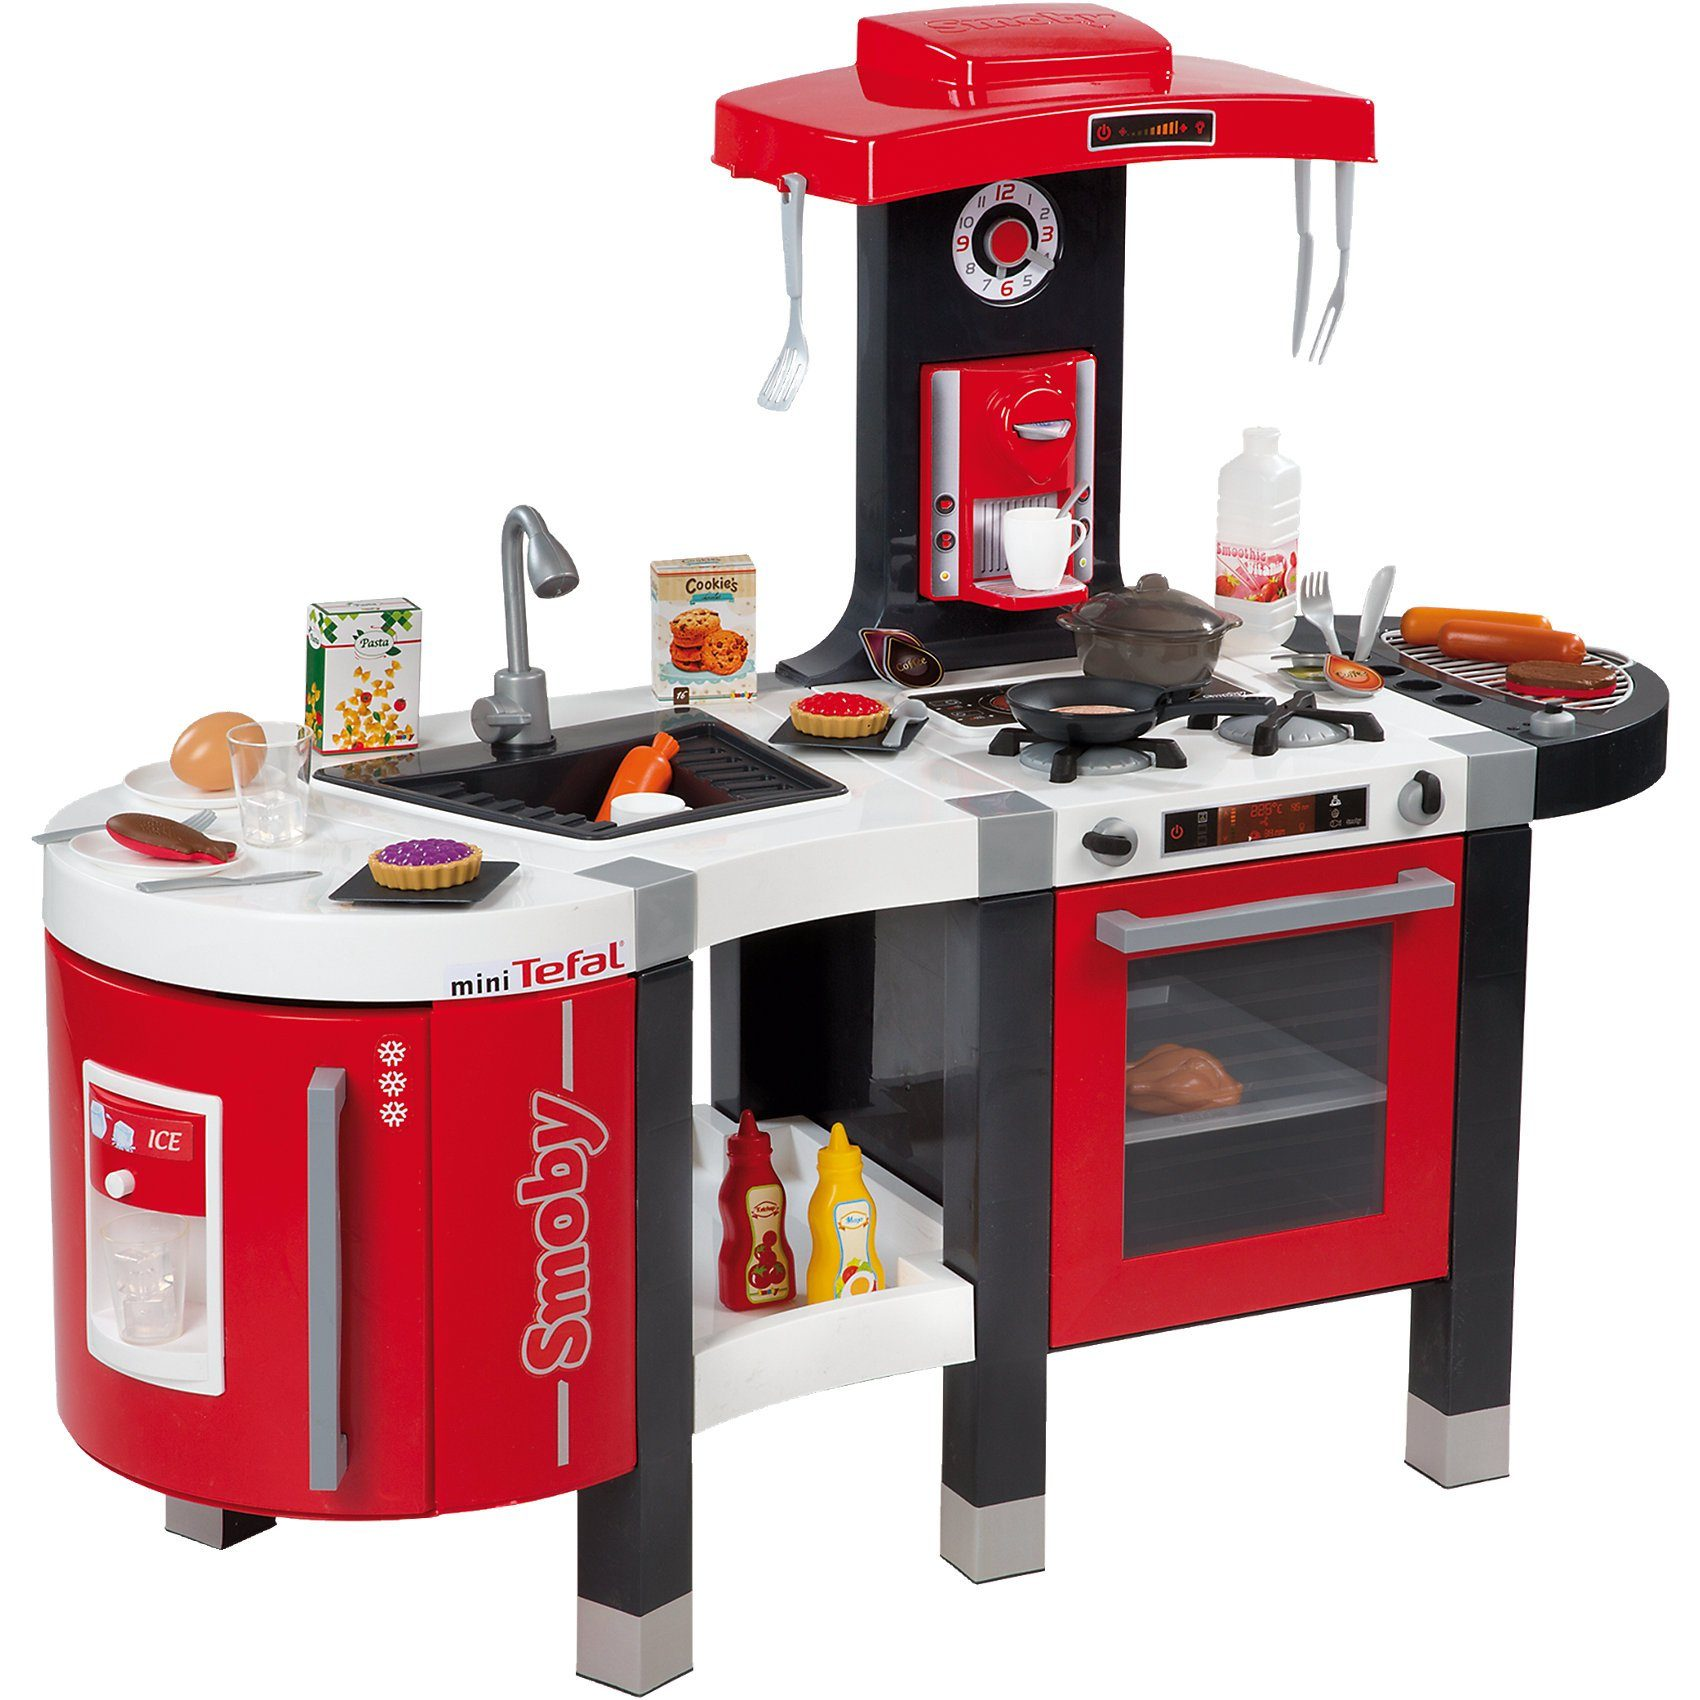 Smoby Tefal French Touch Bubble Spielküche mit Wasserfunktion